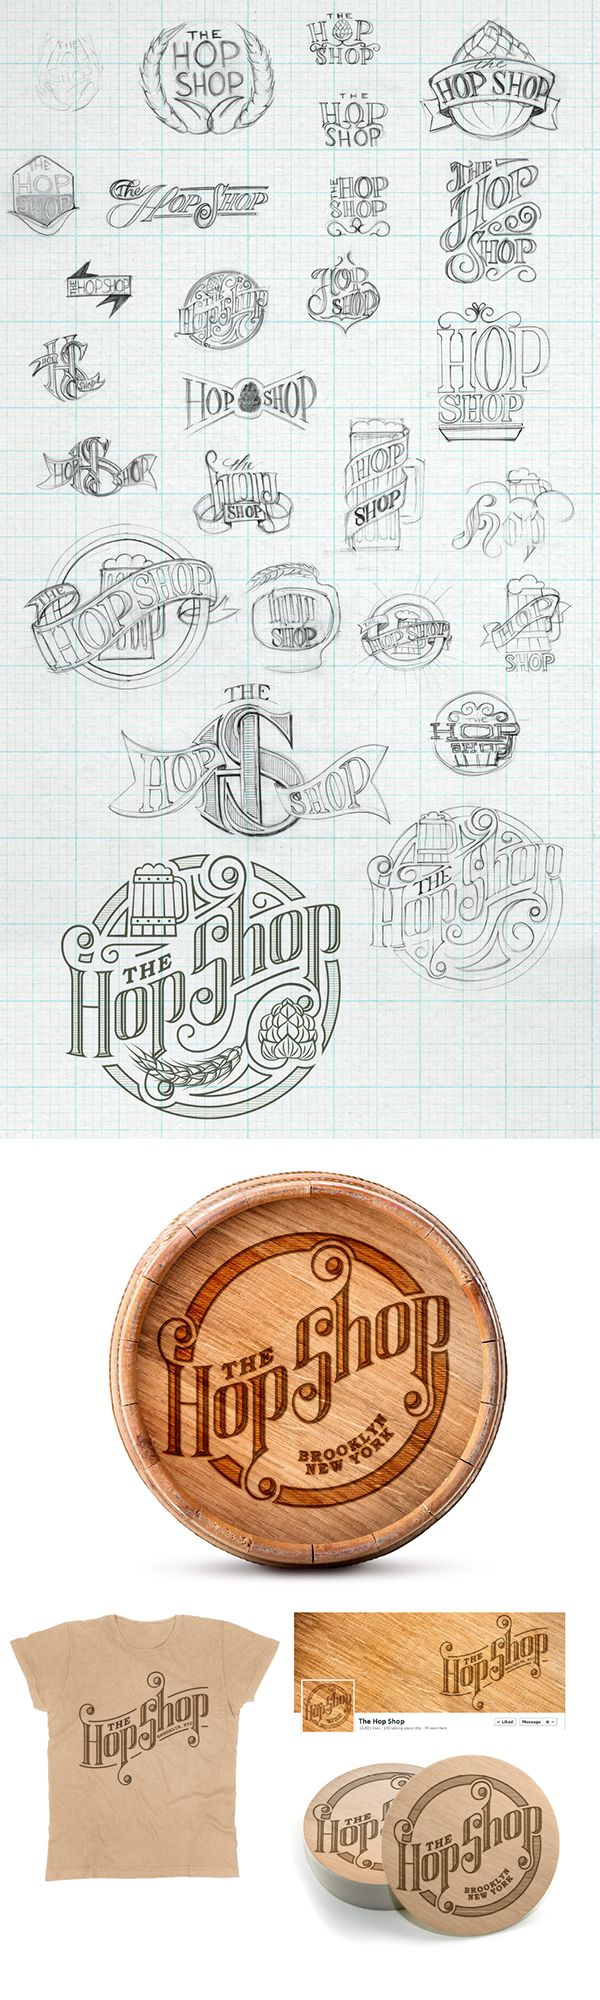 The Hop Shop on Behance